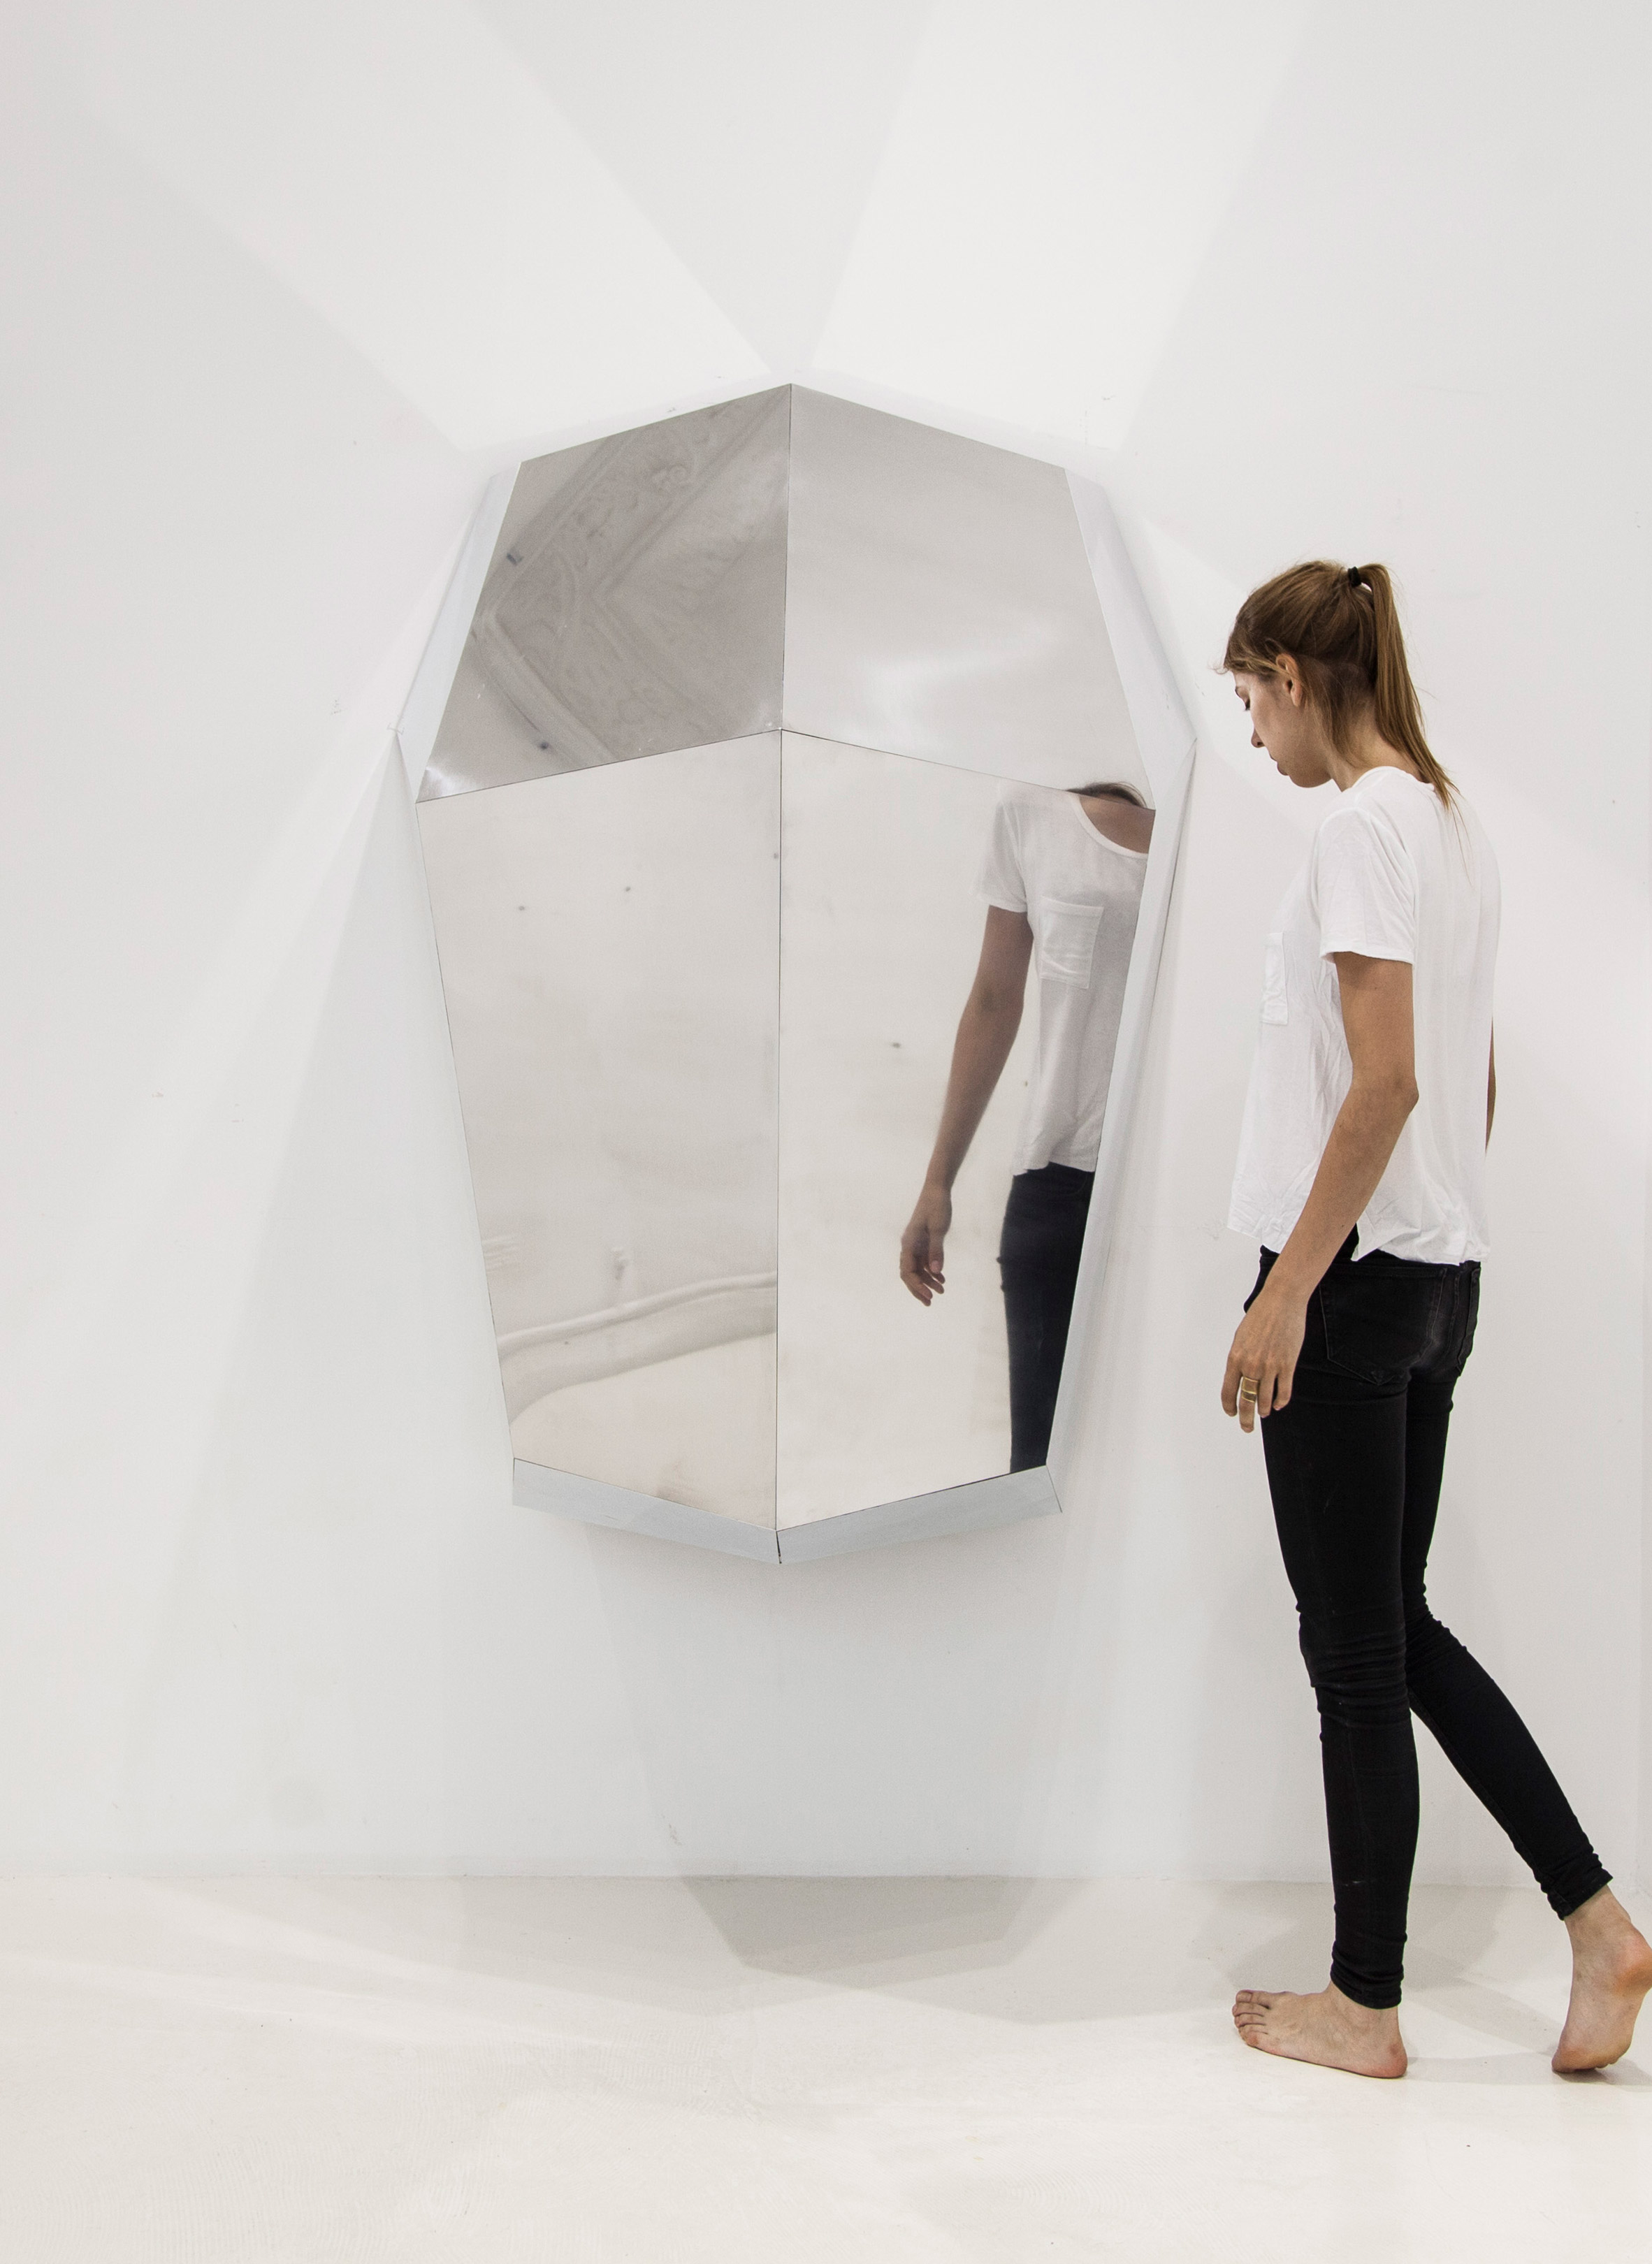 Wall-mounted cubby by Yasmine Benhadj-Djilali provides a private escape for office workers